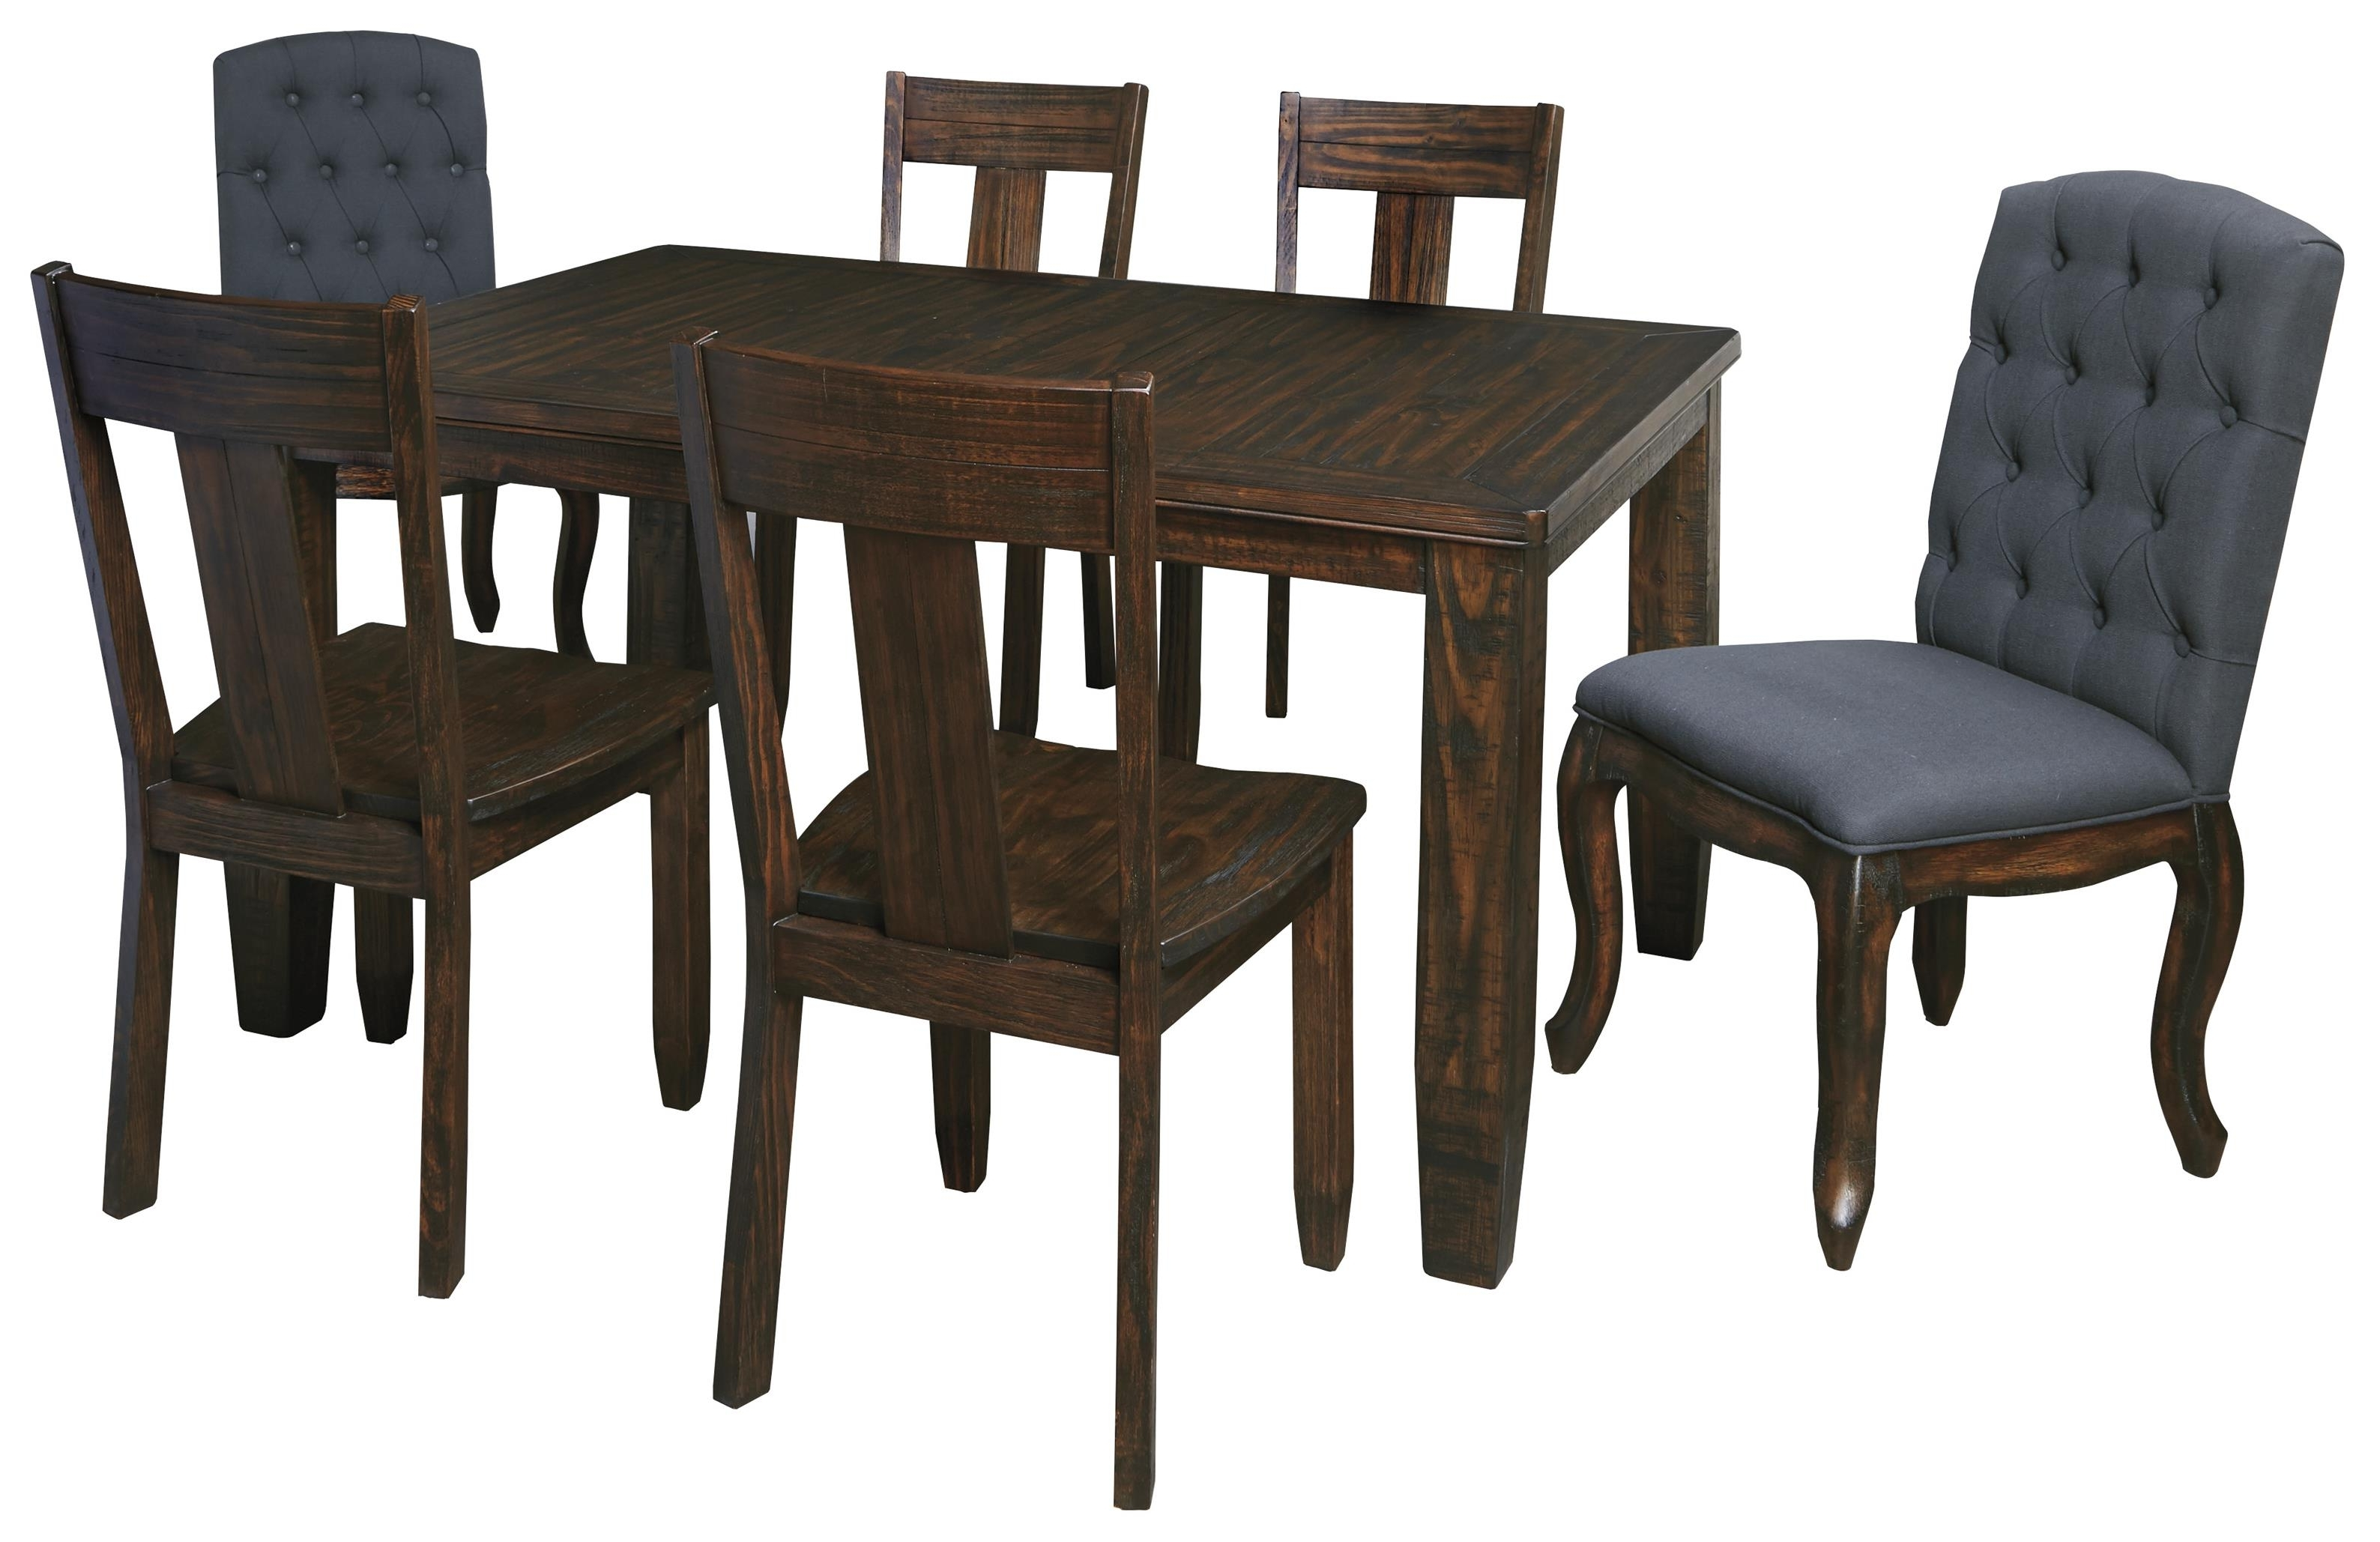 Famous Set 10 Victorian Upholstered Dining Chairs Seats Patterned Dining With Jaxon 7 Piece Rectangle Dining Sets With Upholstered Chairs (View 15 of 25)